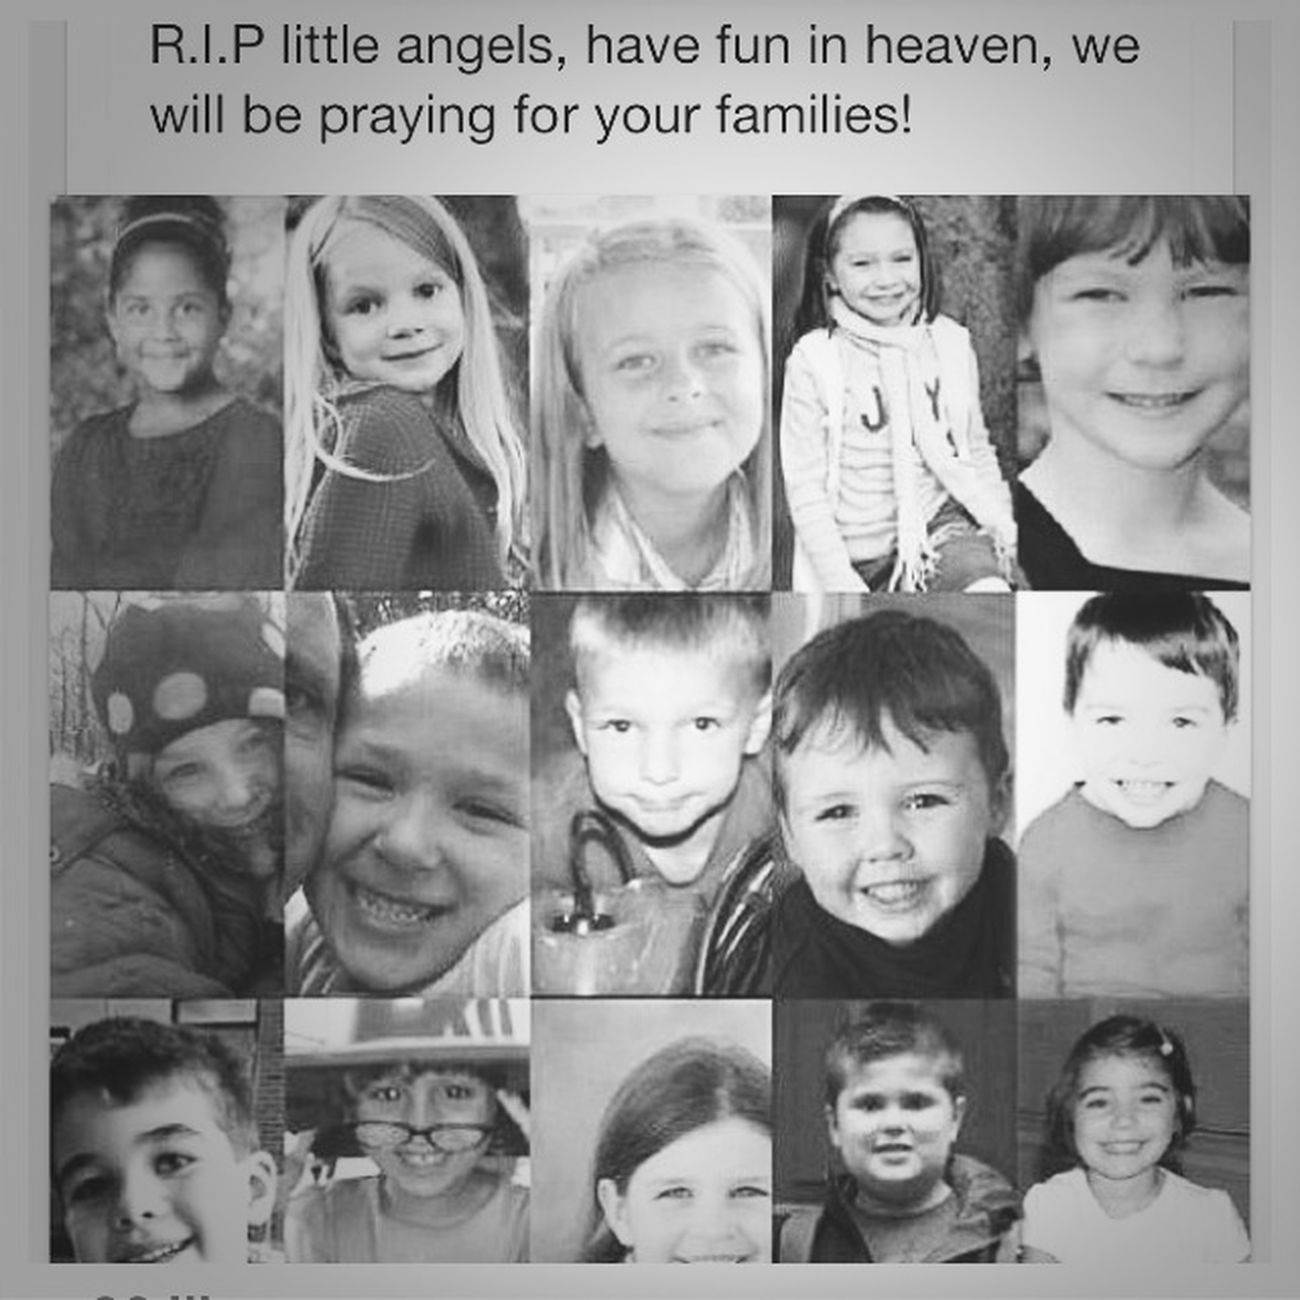 Rip little angles... Have fun in heaven